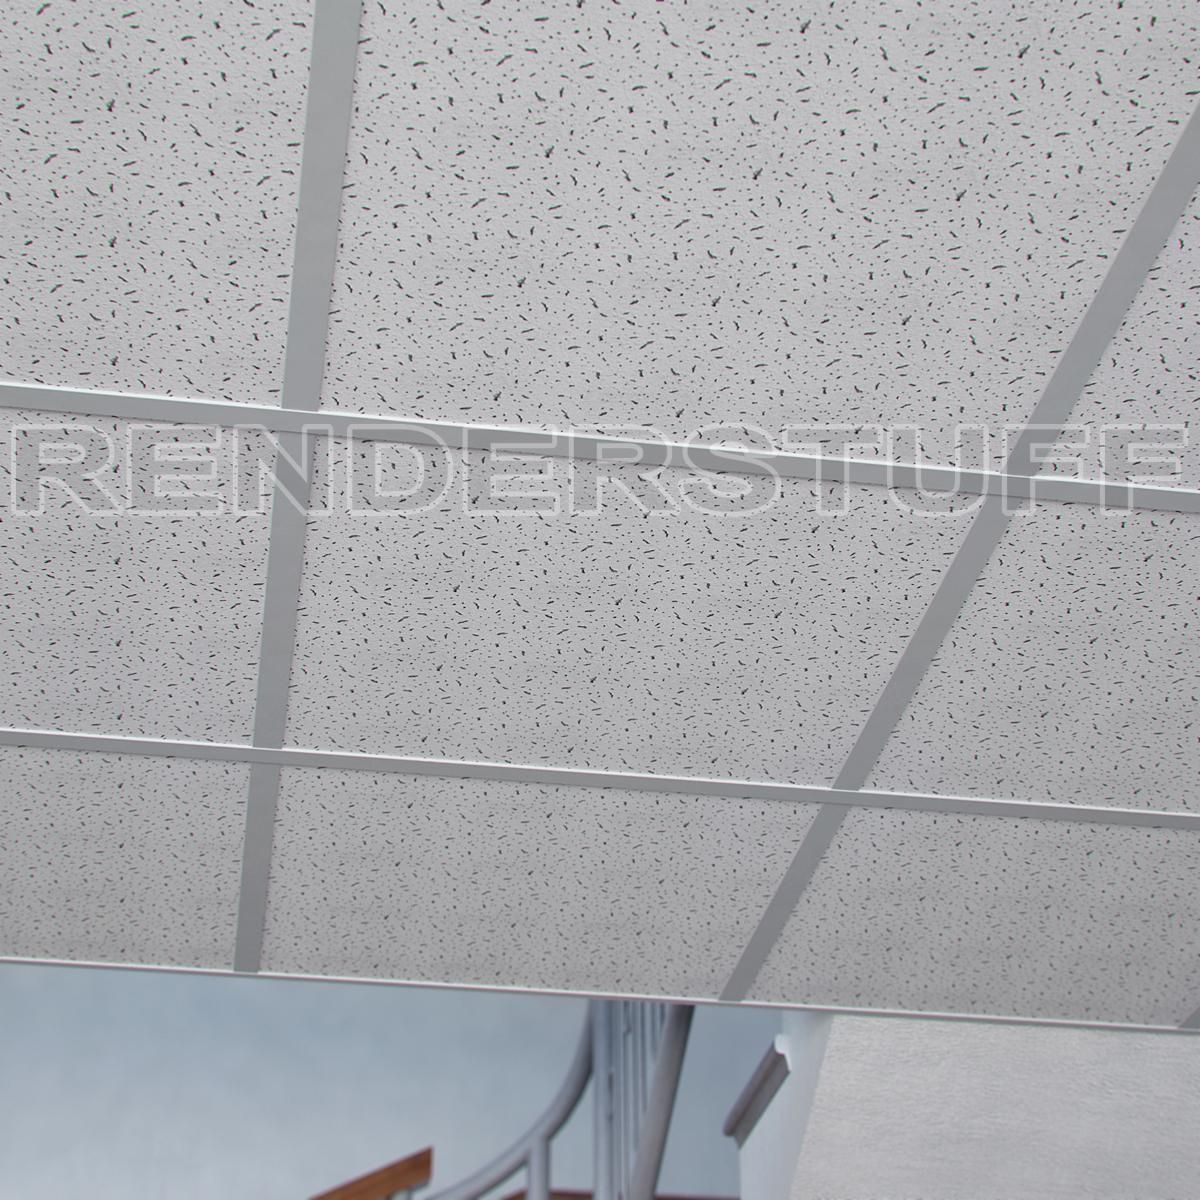 Armstrong drop ceiling tiles httpcreativechairsandtables armstrong drop ceiling tiles dailygadgetfo Gallery